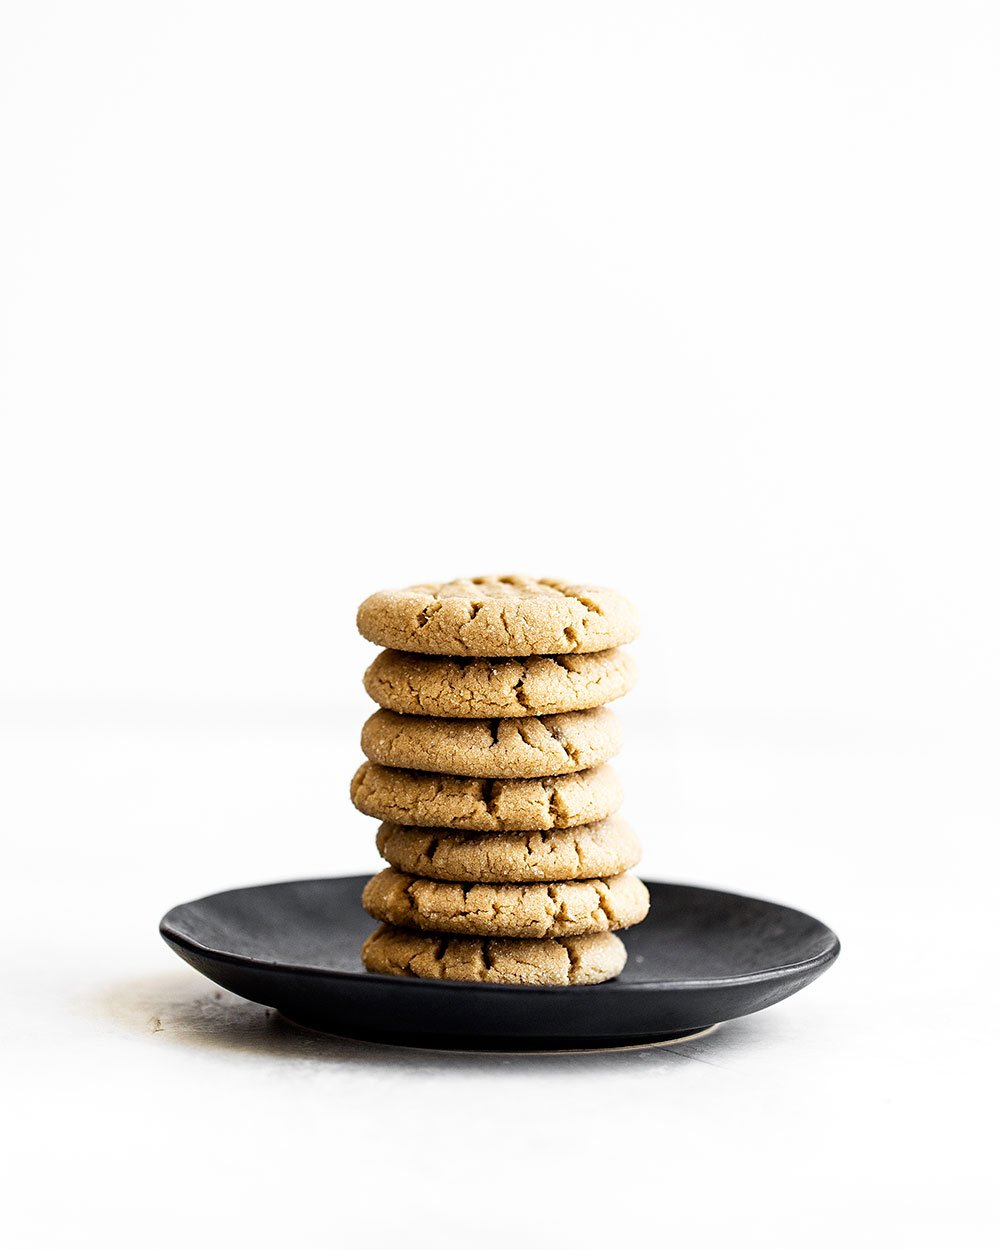 Stack of peanut butter cookies on a plate